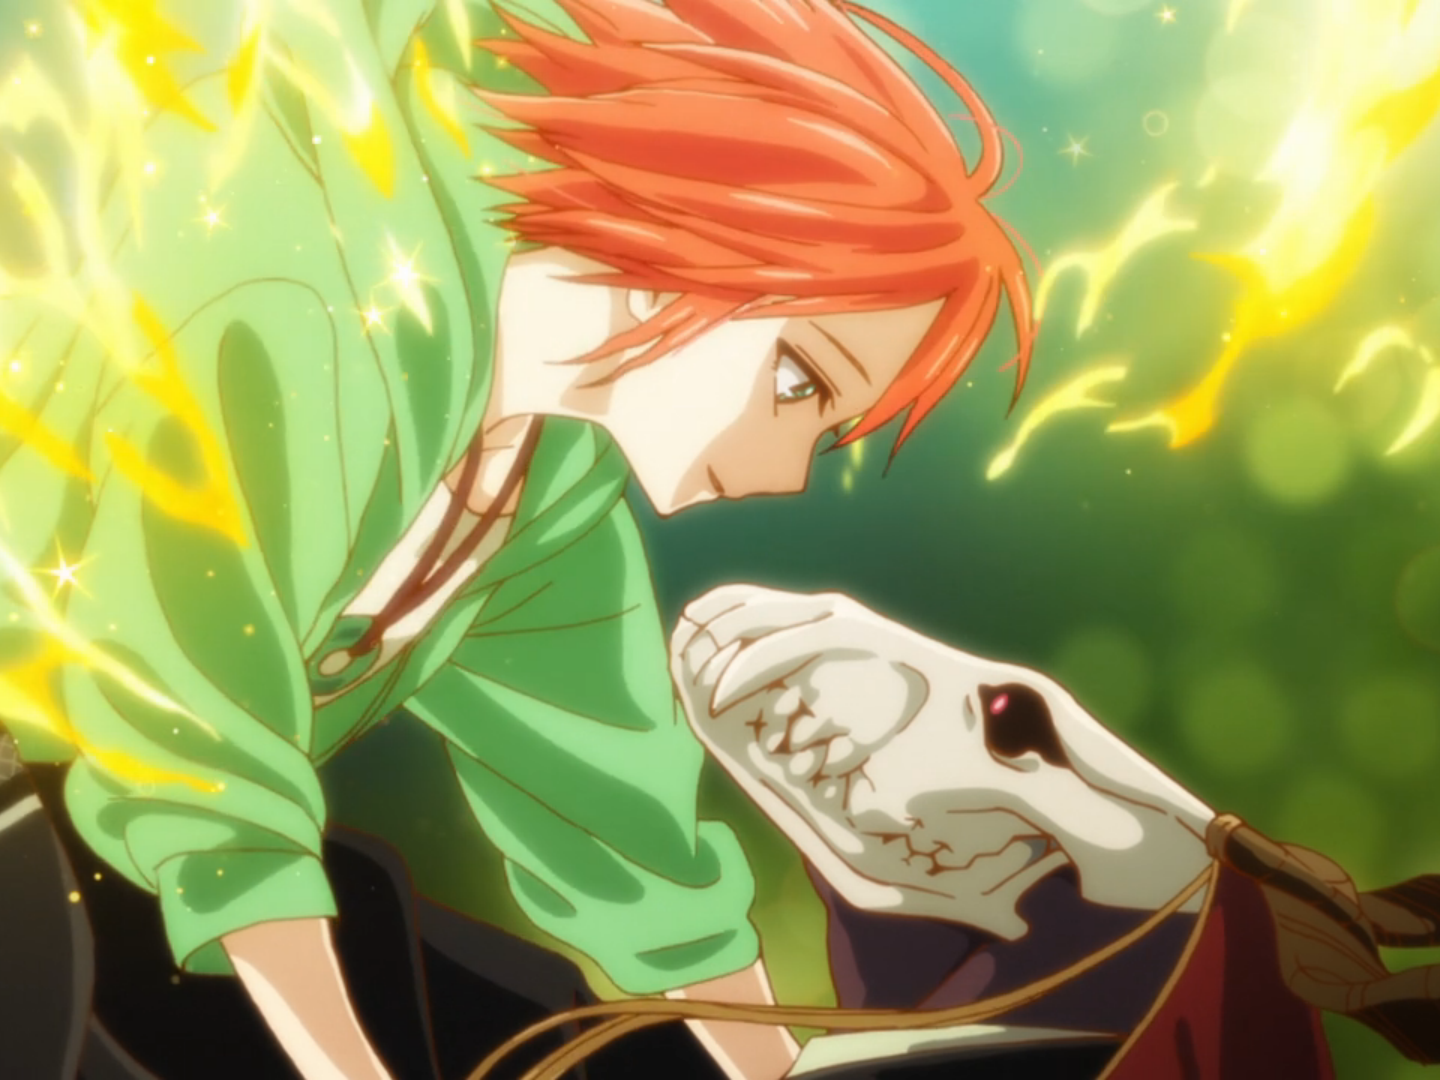 [Feature] Love, power, and safety in The Ancient Magus' Bride